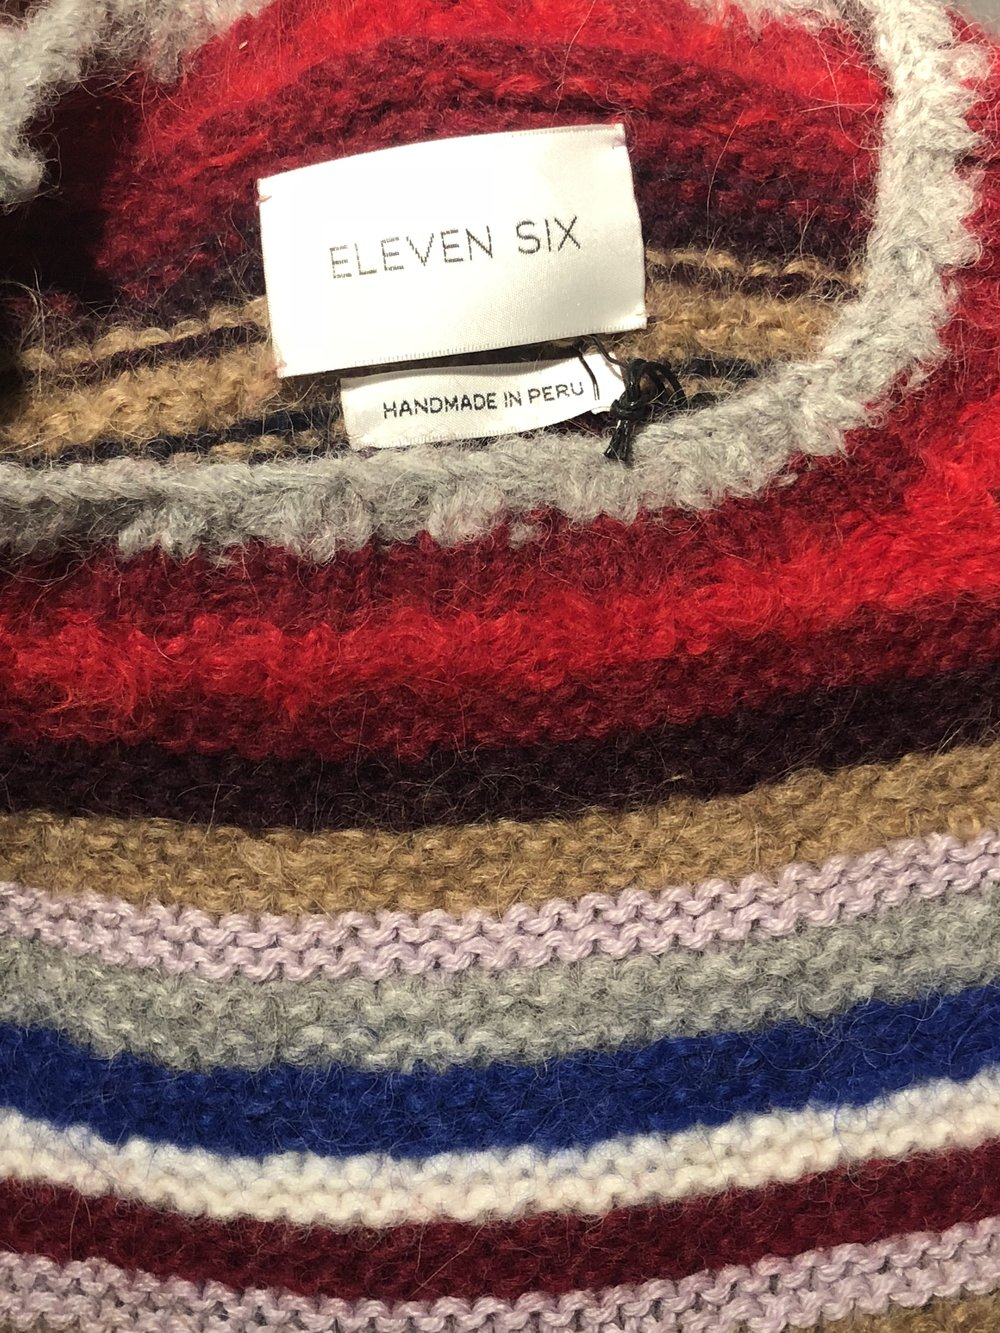 ELEVEN SIX is a women's knitwear brand designed in New York and sustainably produced in Peru and Bolivia by artisans.